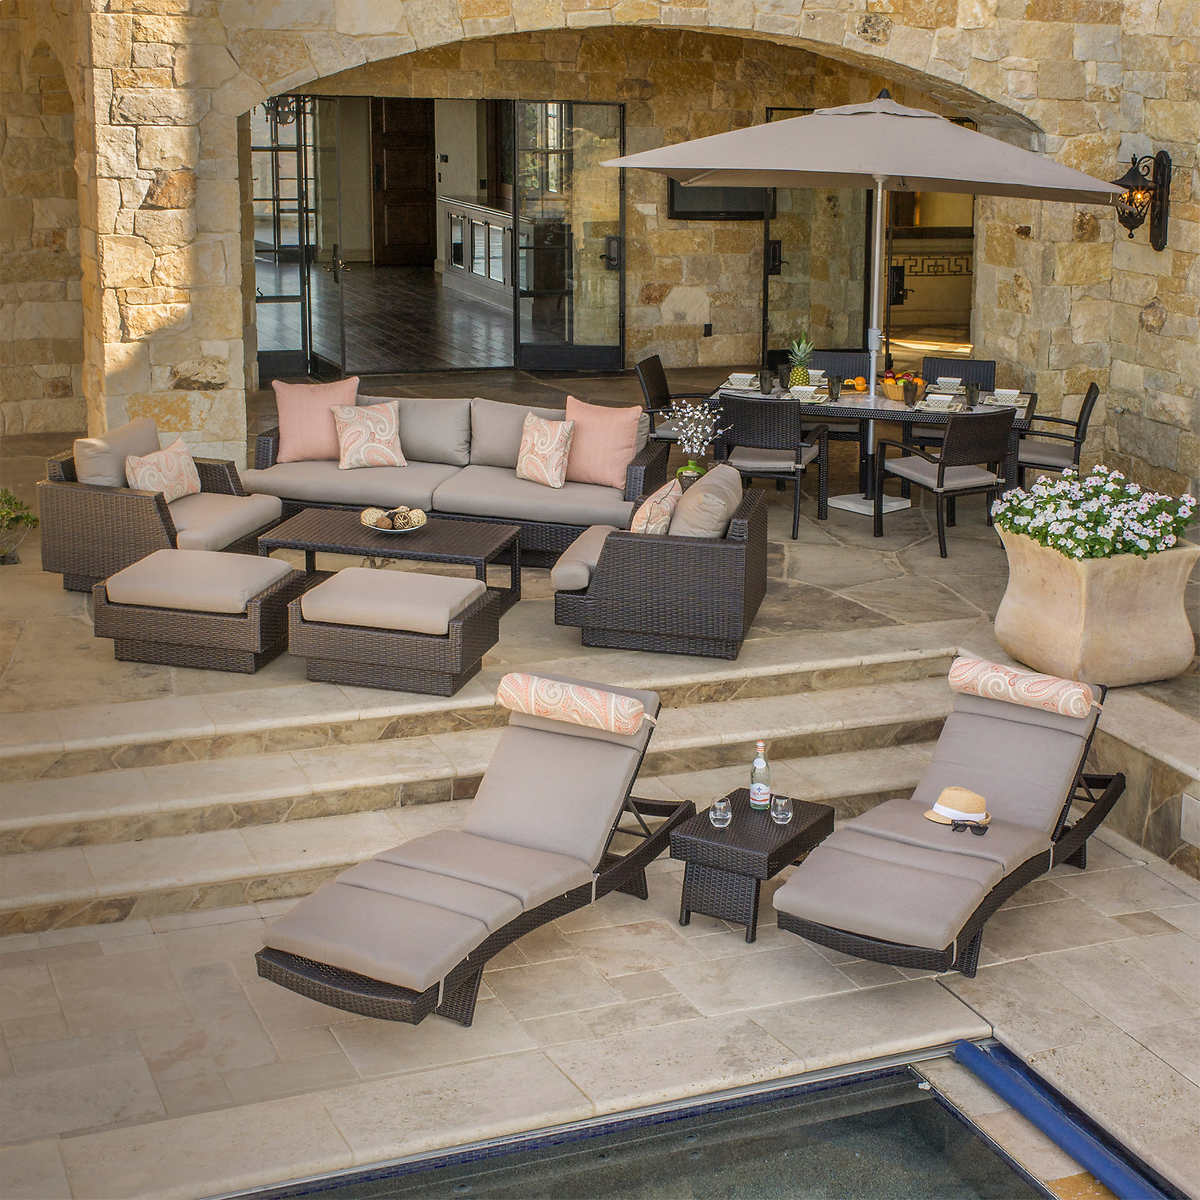 Portofino Comfort 18-piece Estate Collection in Espresso Taupe by RST Brands - Portofino Costco